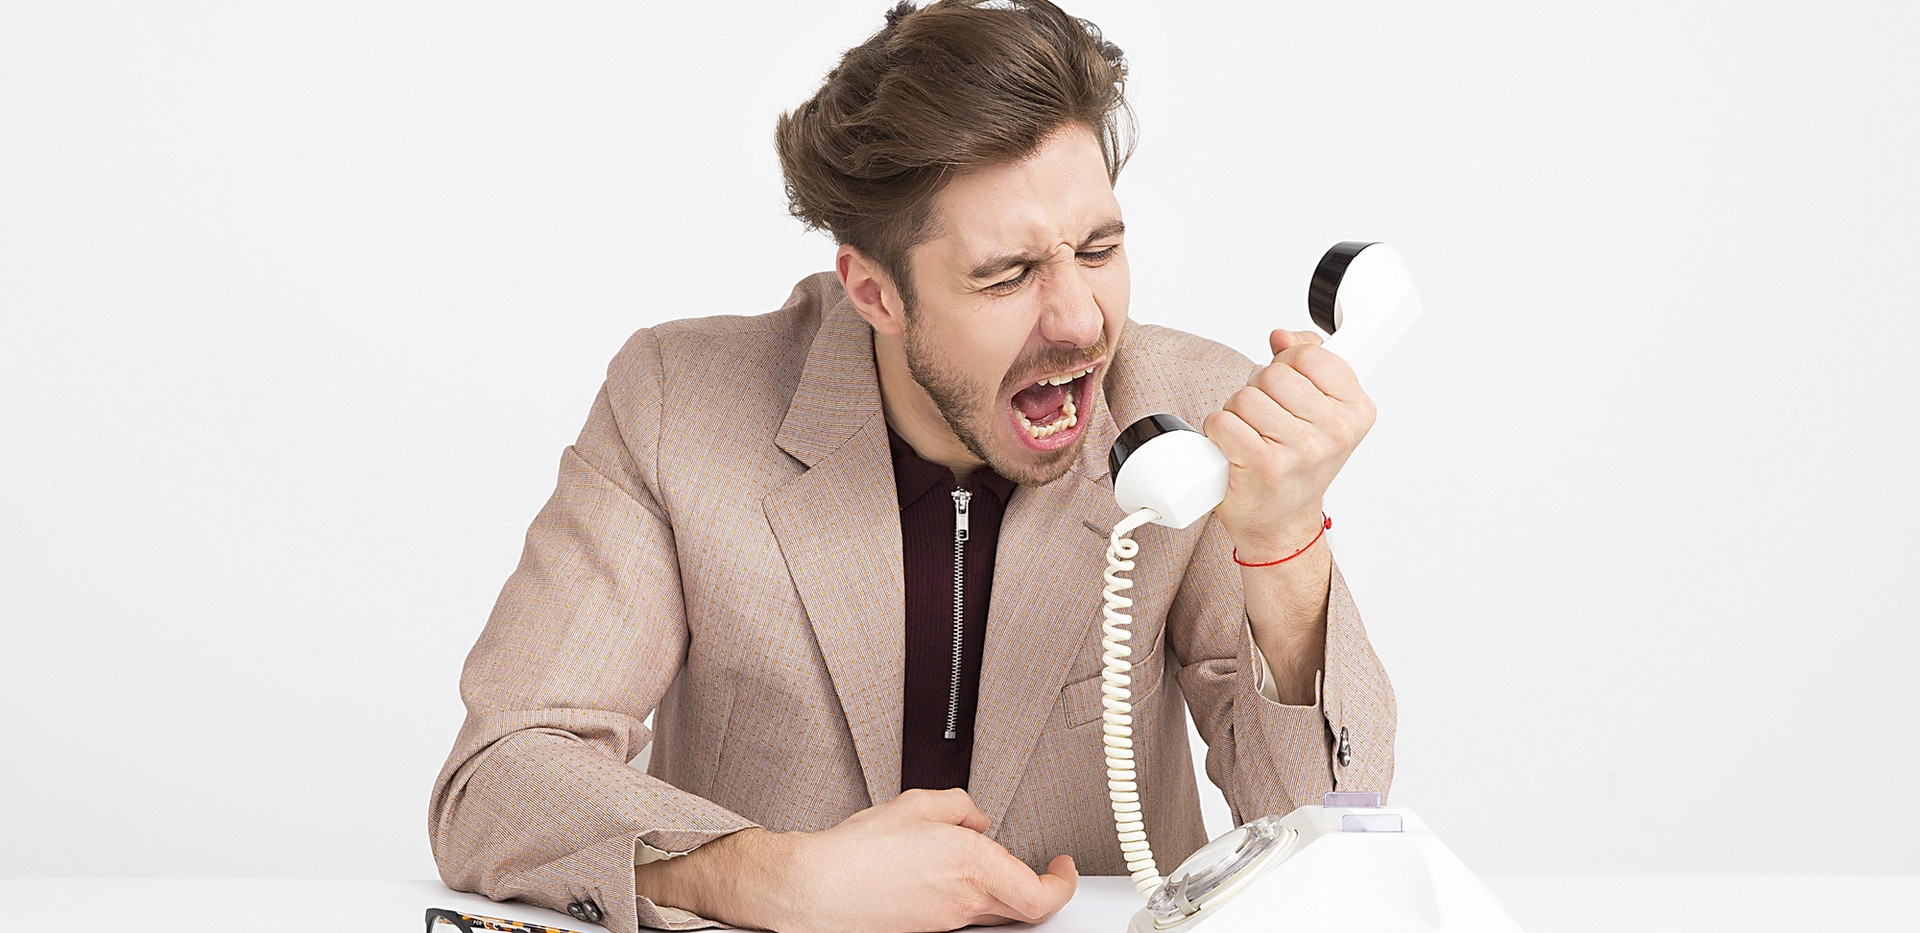 Allow us to take the calls and vet your prosective tenants before signing a lease